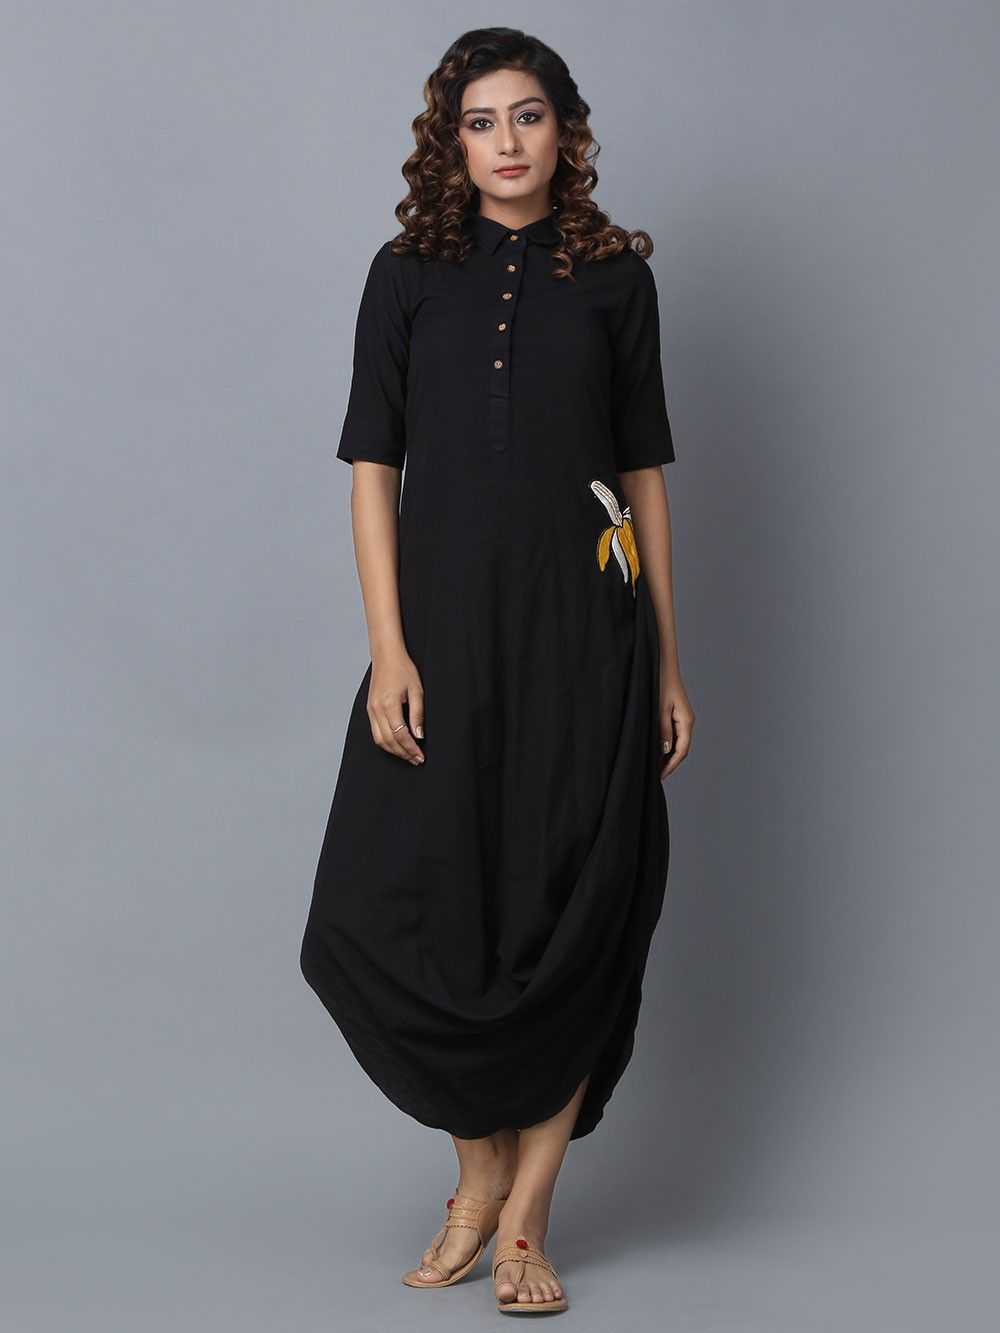 d97eb053e9c Buy Black Cotton Linen Drape Dress online at Theloom